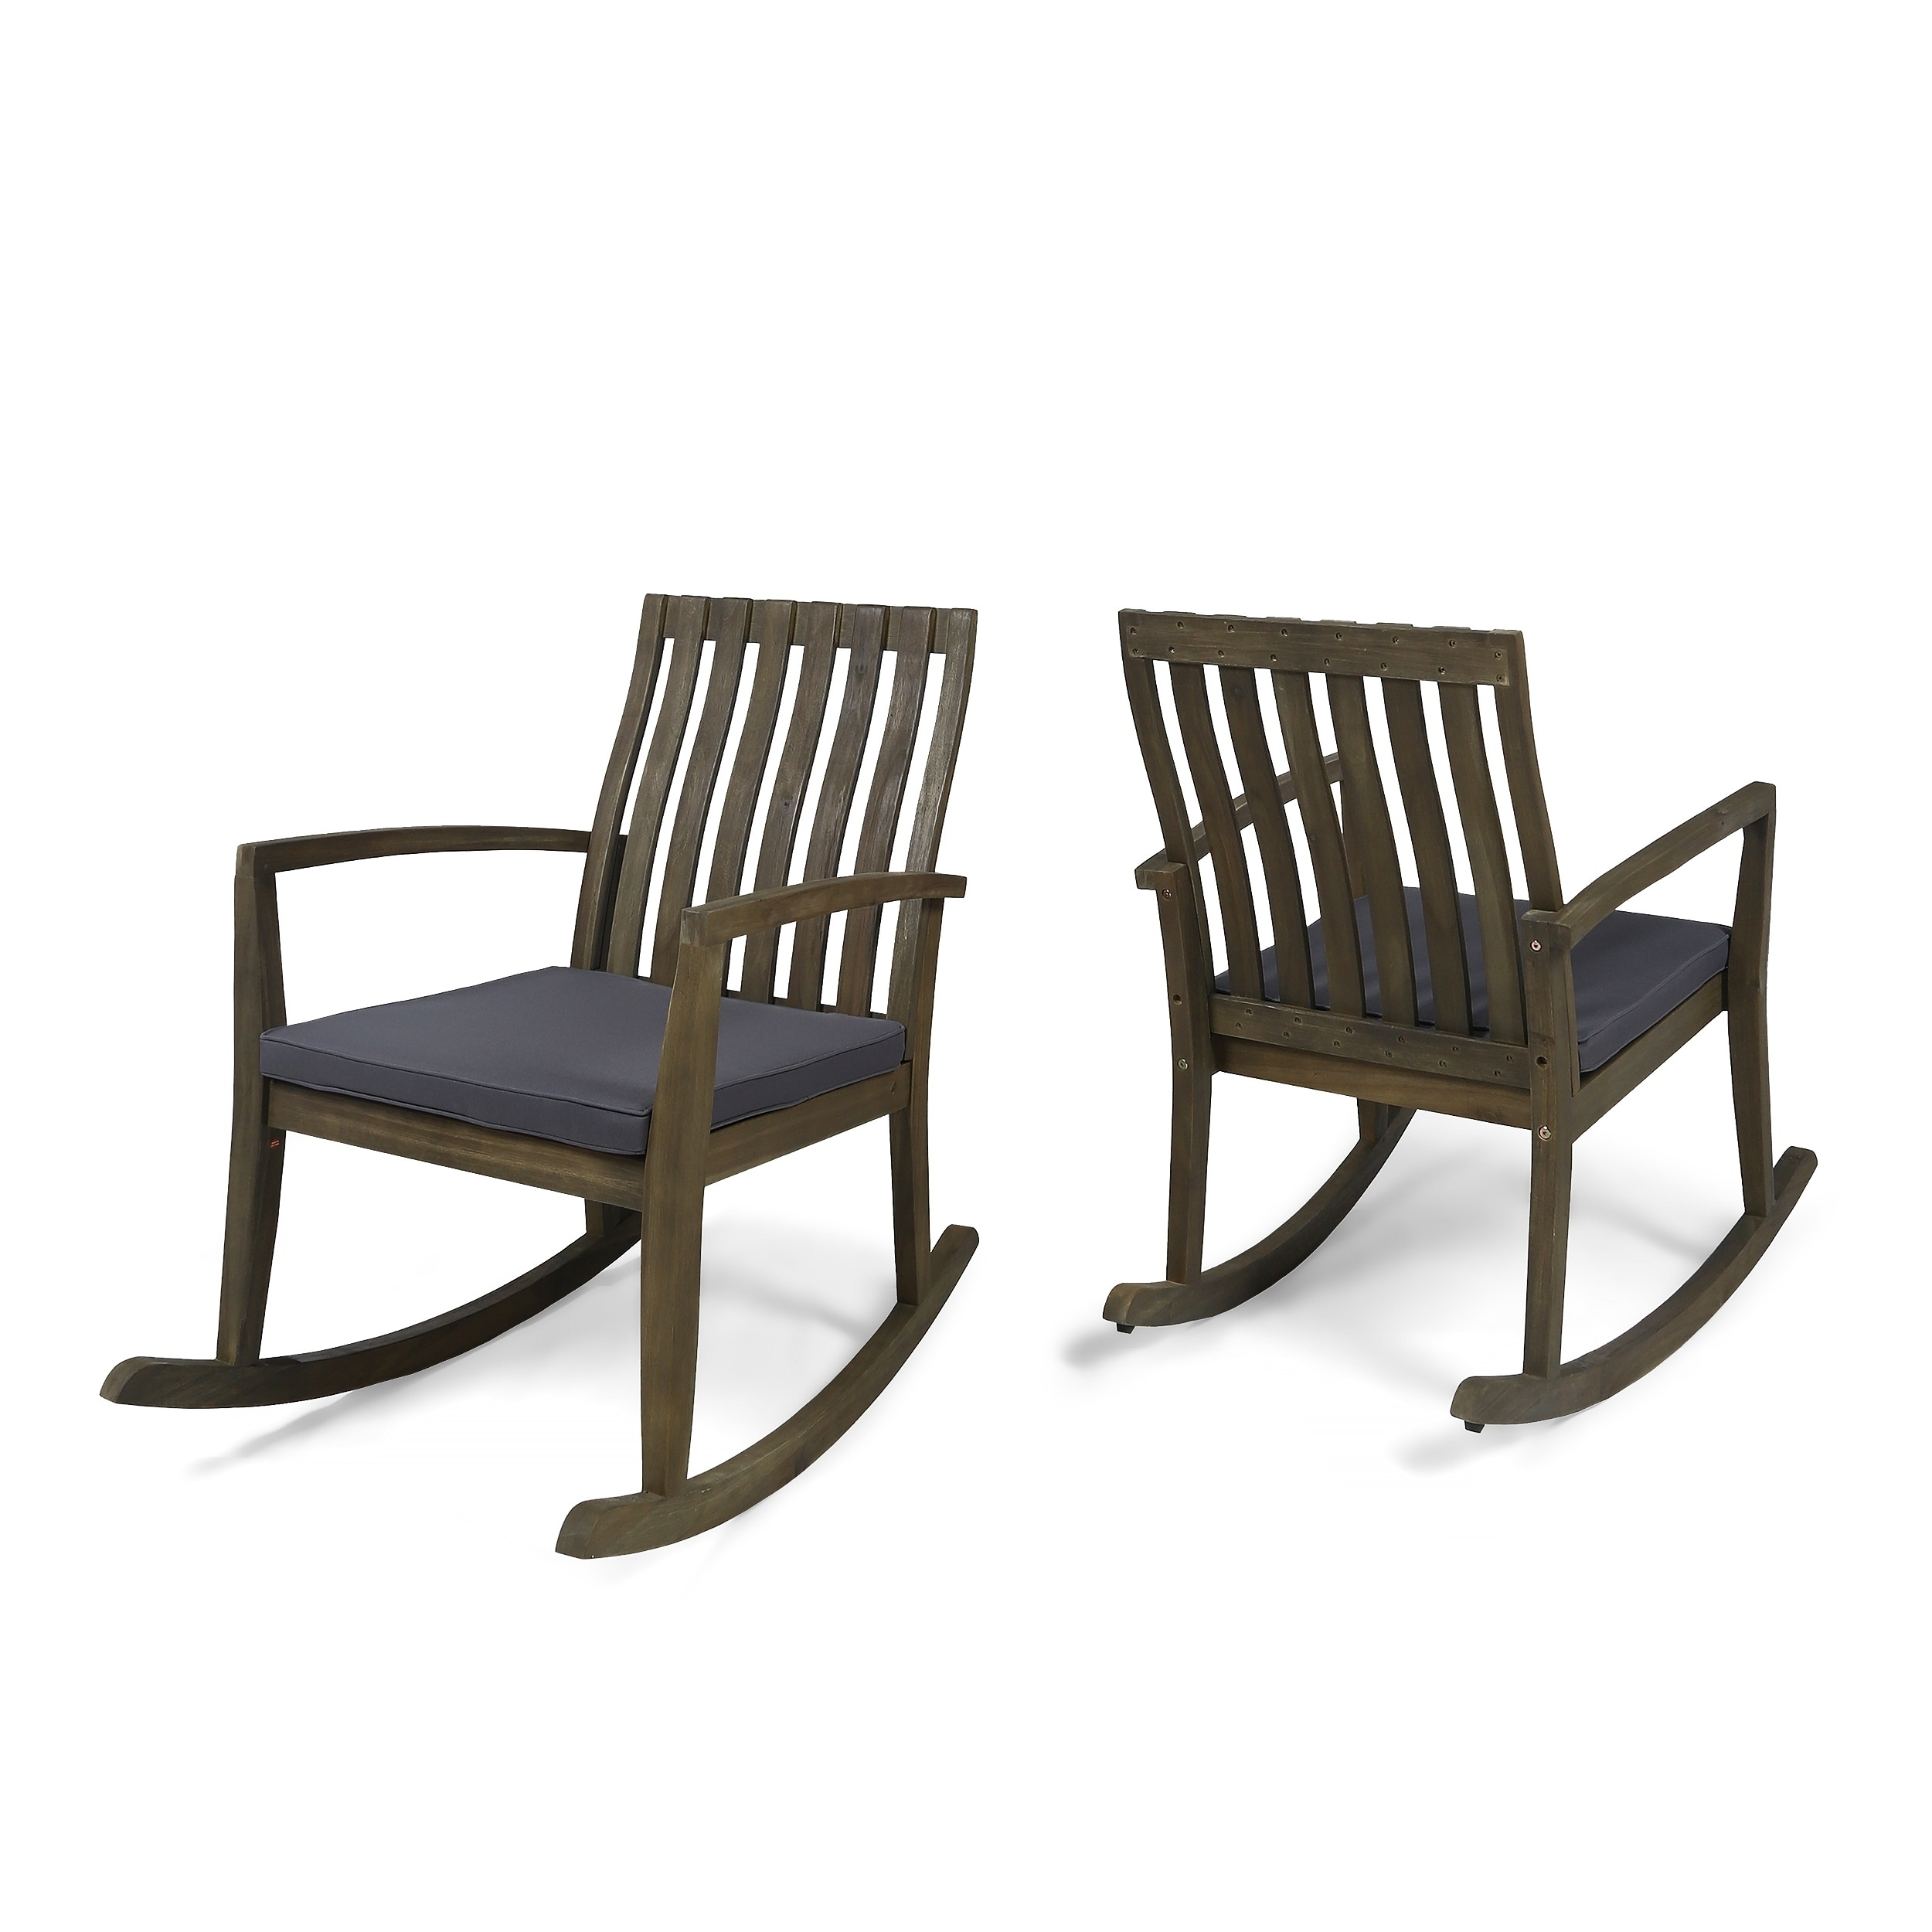 Colmena Outdoor Acacia Wood Rocking Chair With Water Resistant Cushions Set Of 2 By Christopher Knight Home